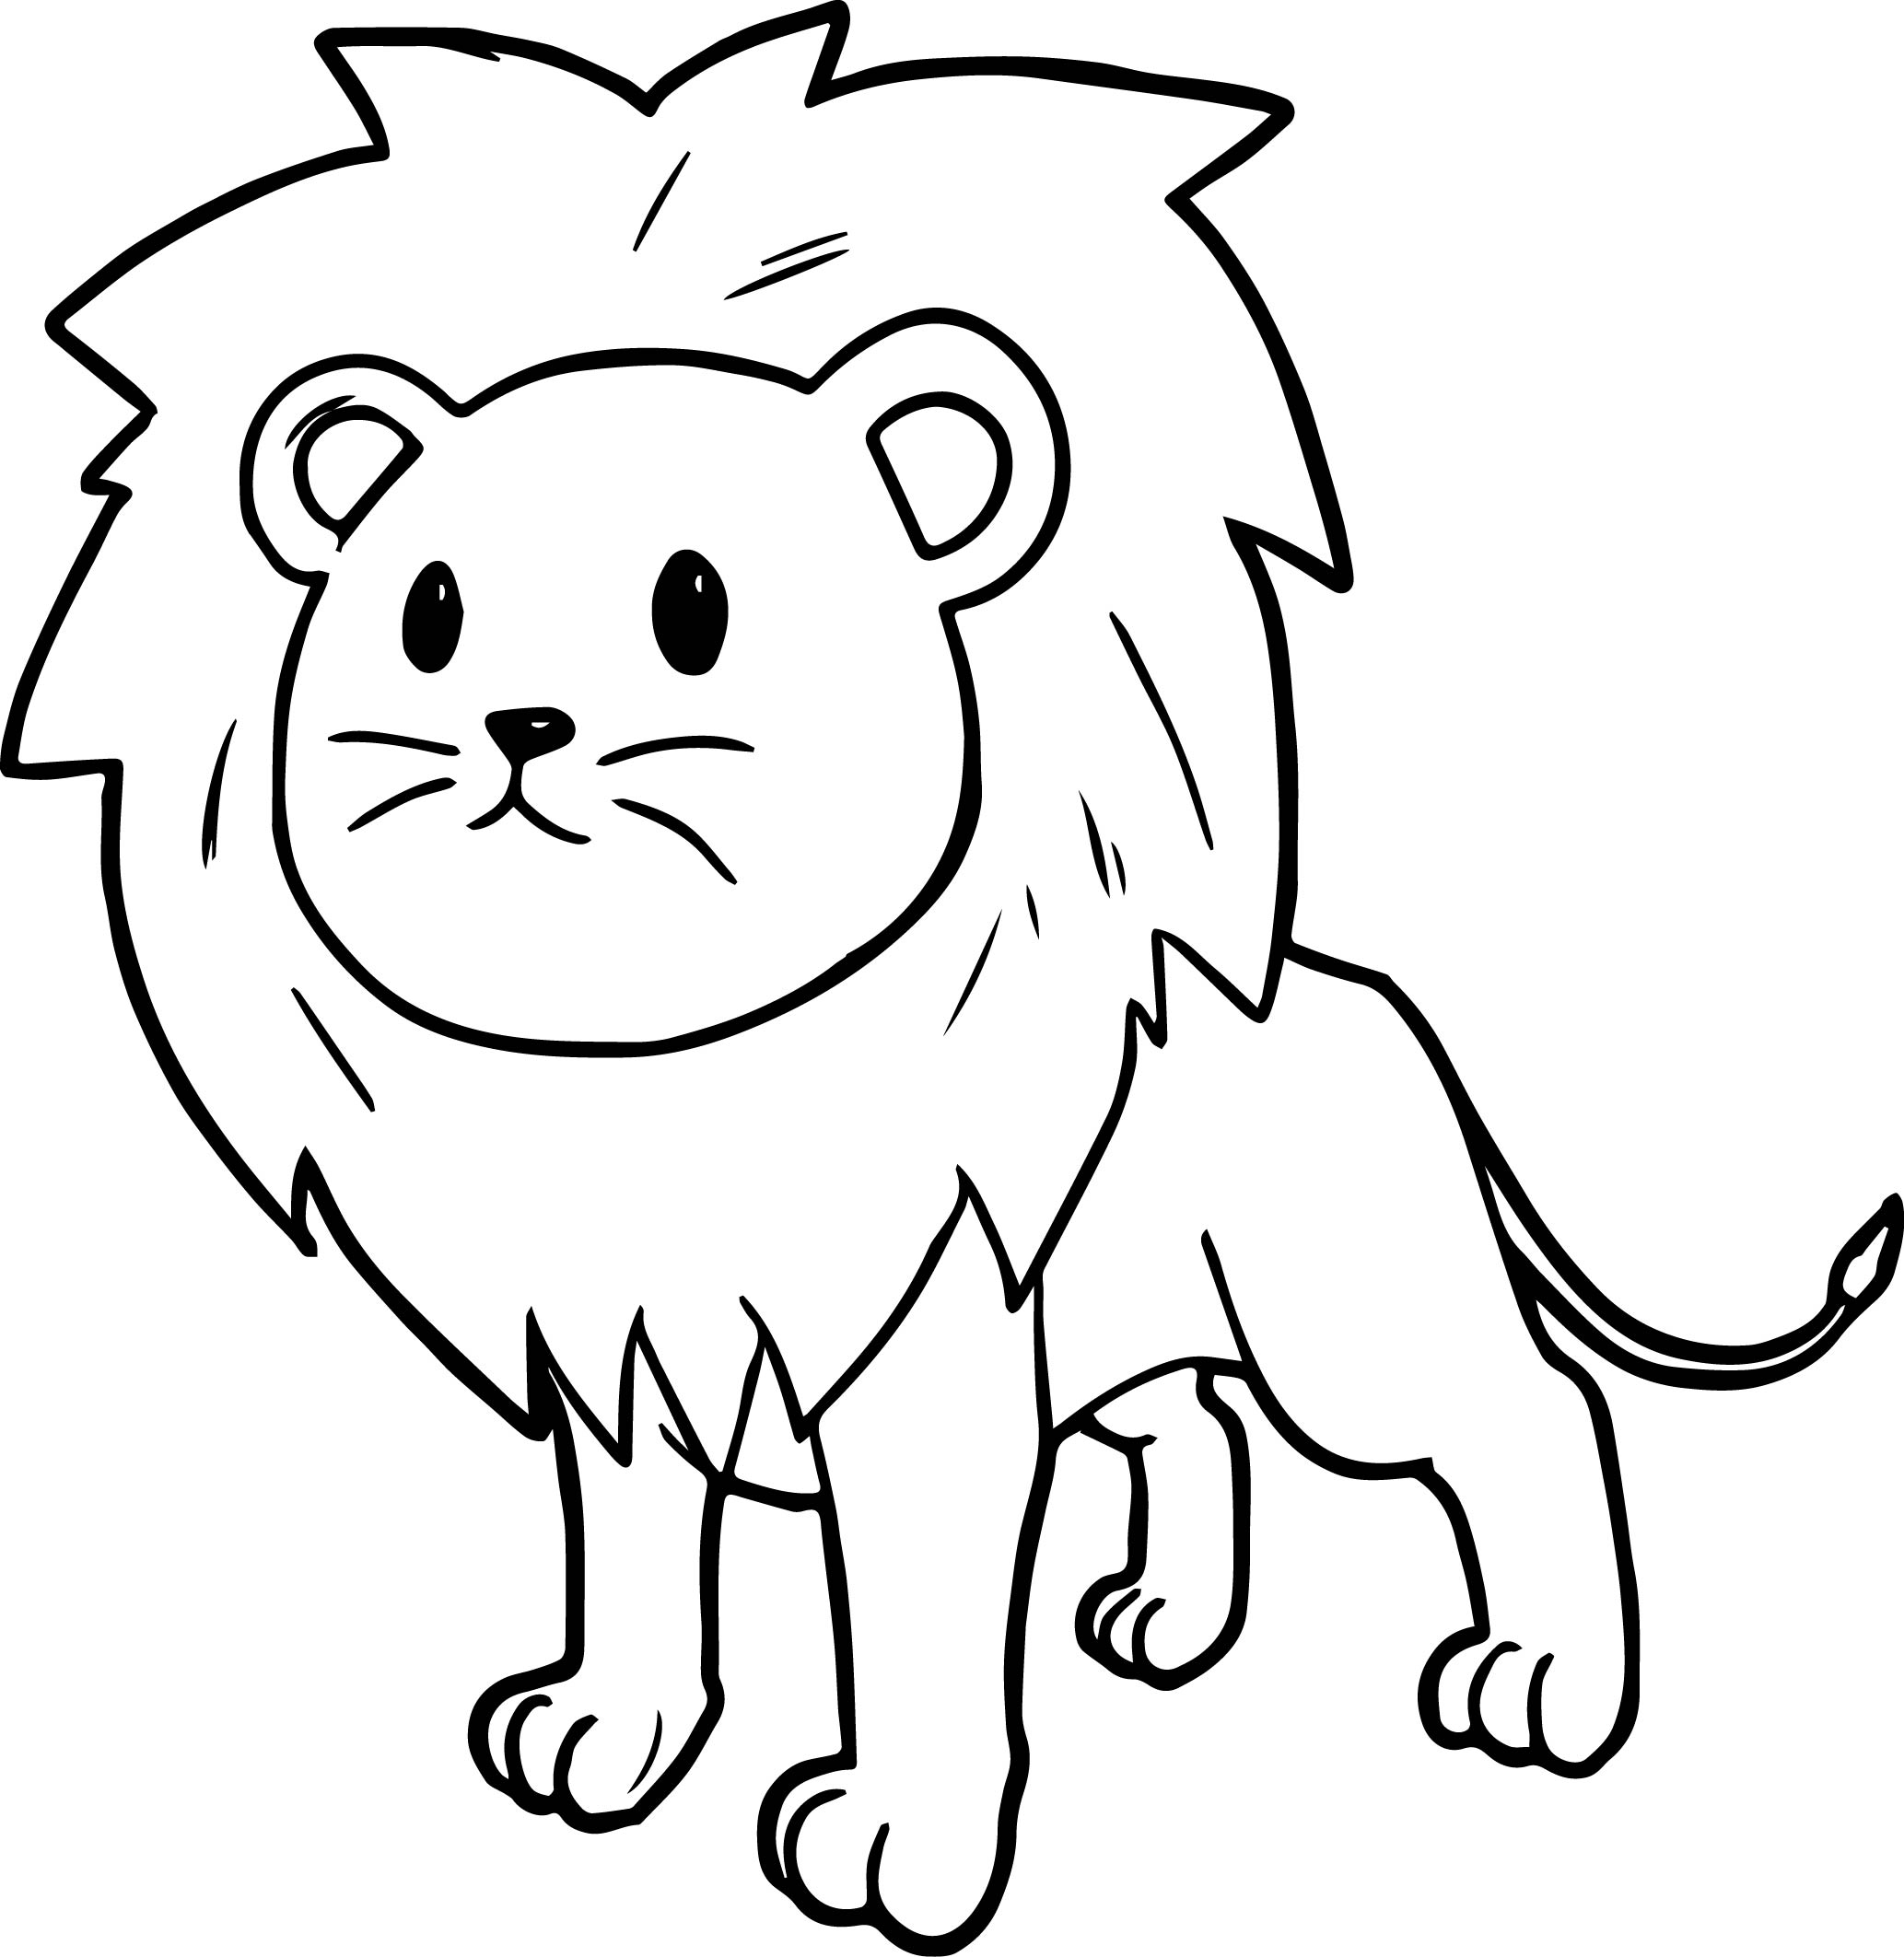 lion color page free printable lion coloring pages at getdrawings free page color lion